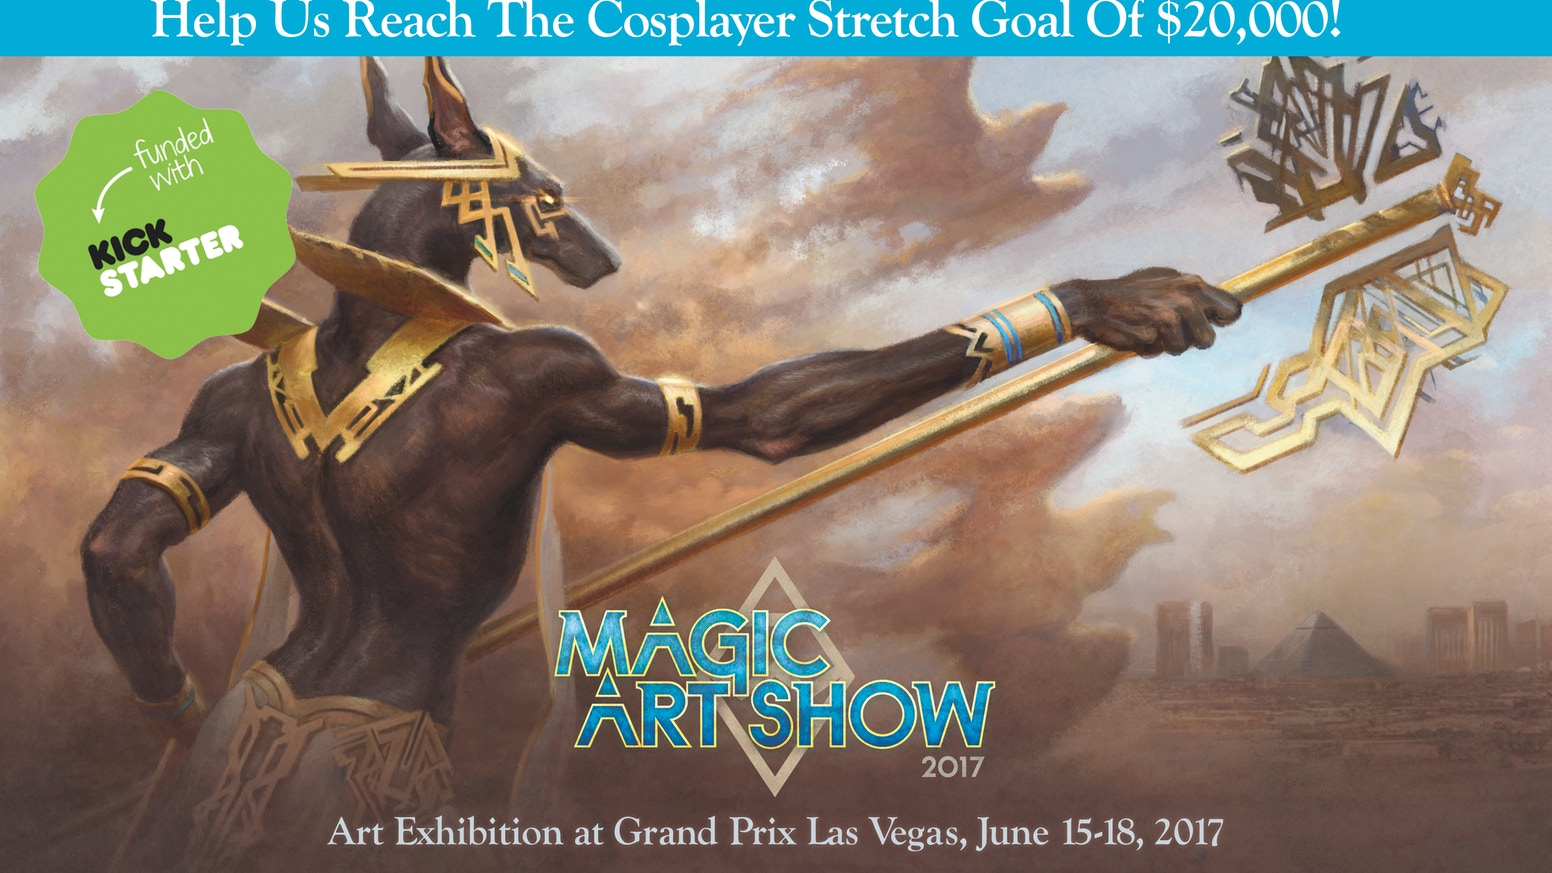 Support the world's largest exhibition of Magic: the Gathering artwork ever created to be hosted at GP Vegas 2017 on June 14-18